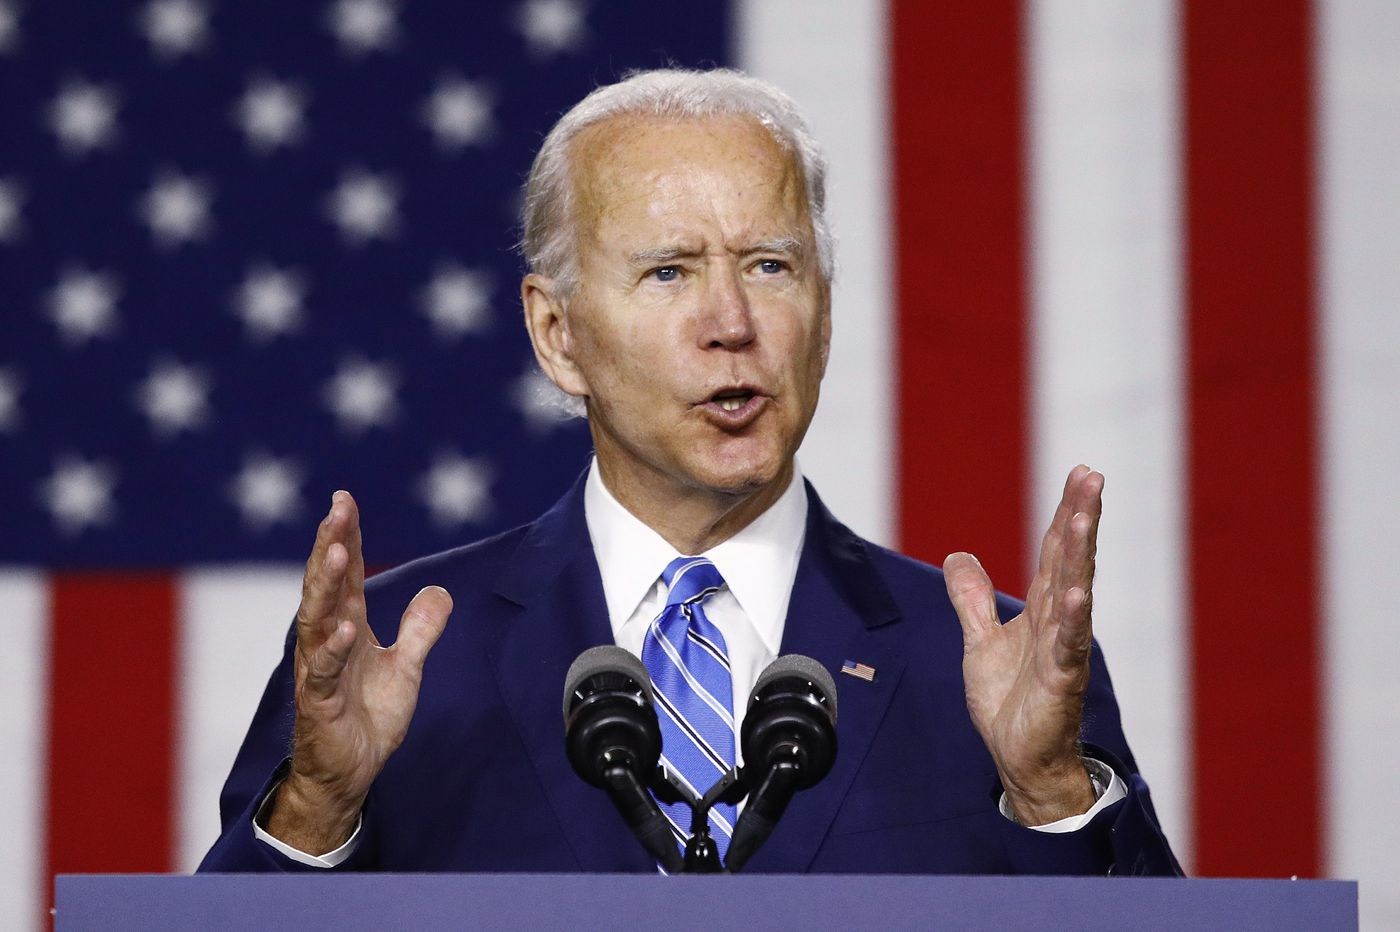 No, Joe Biden doesn't want to ban fracking or kill the Pennsylvania jobs it supports